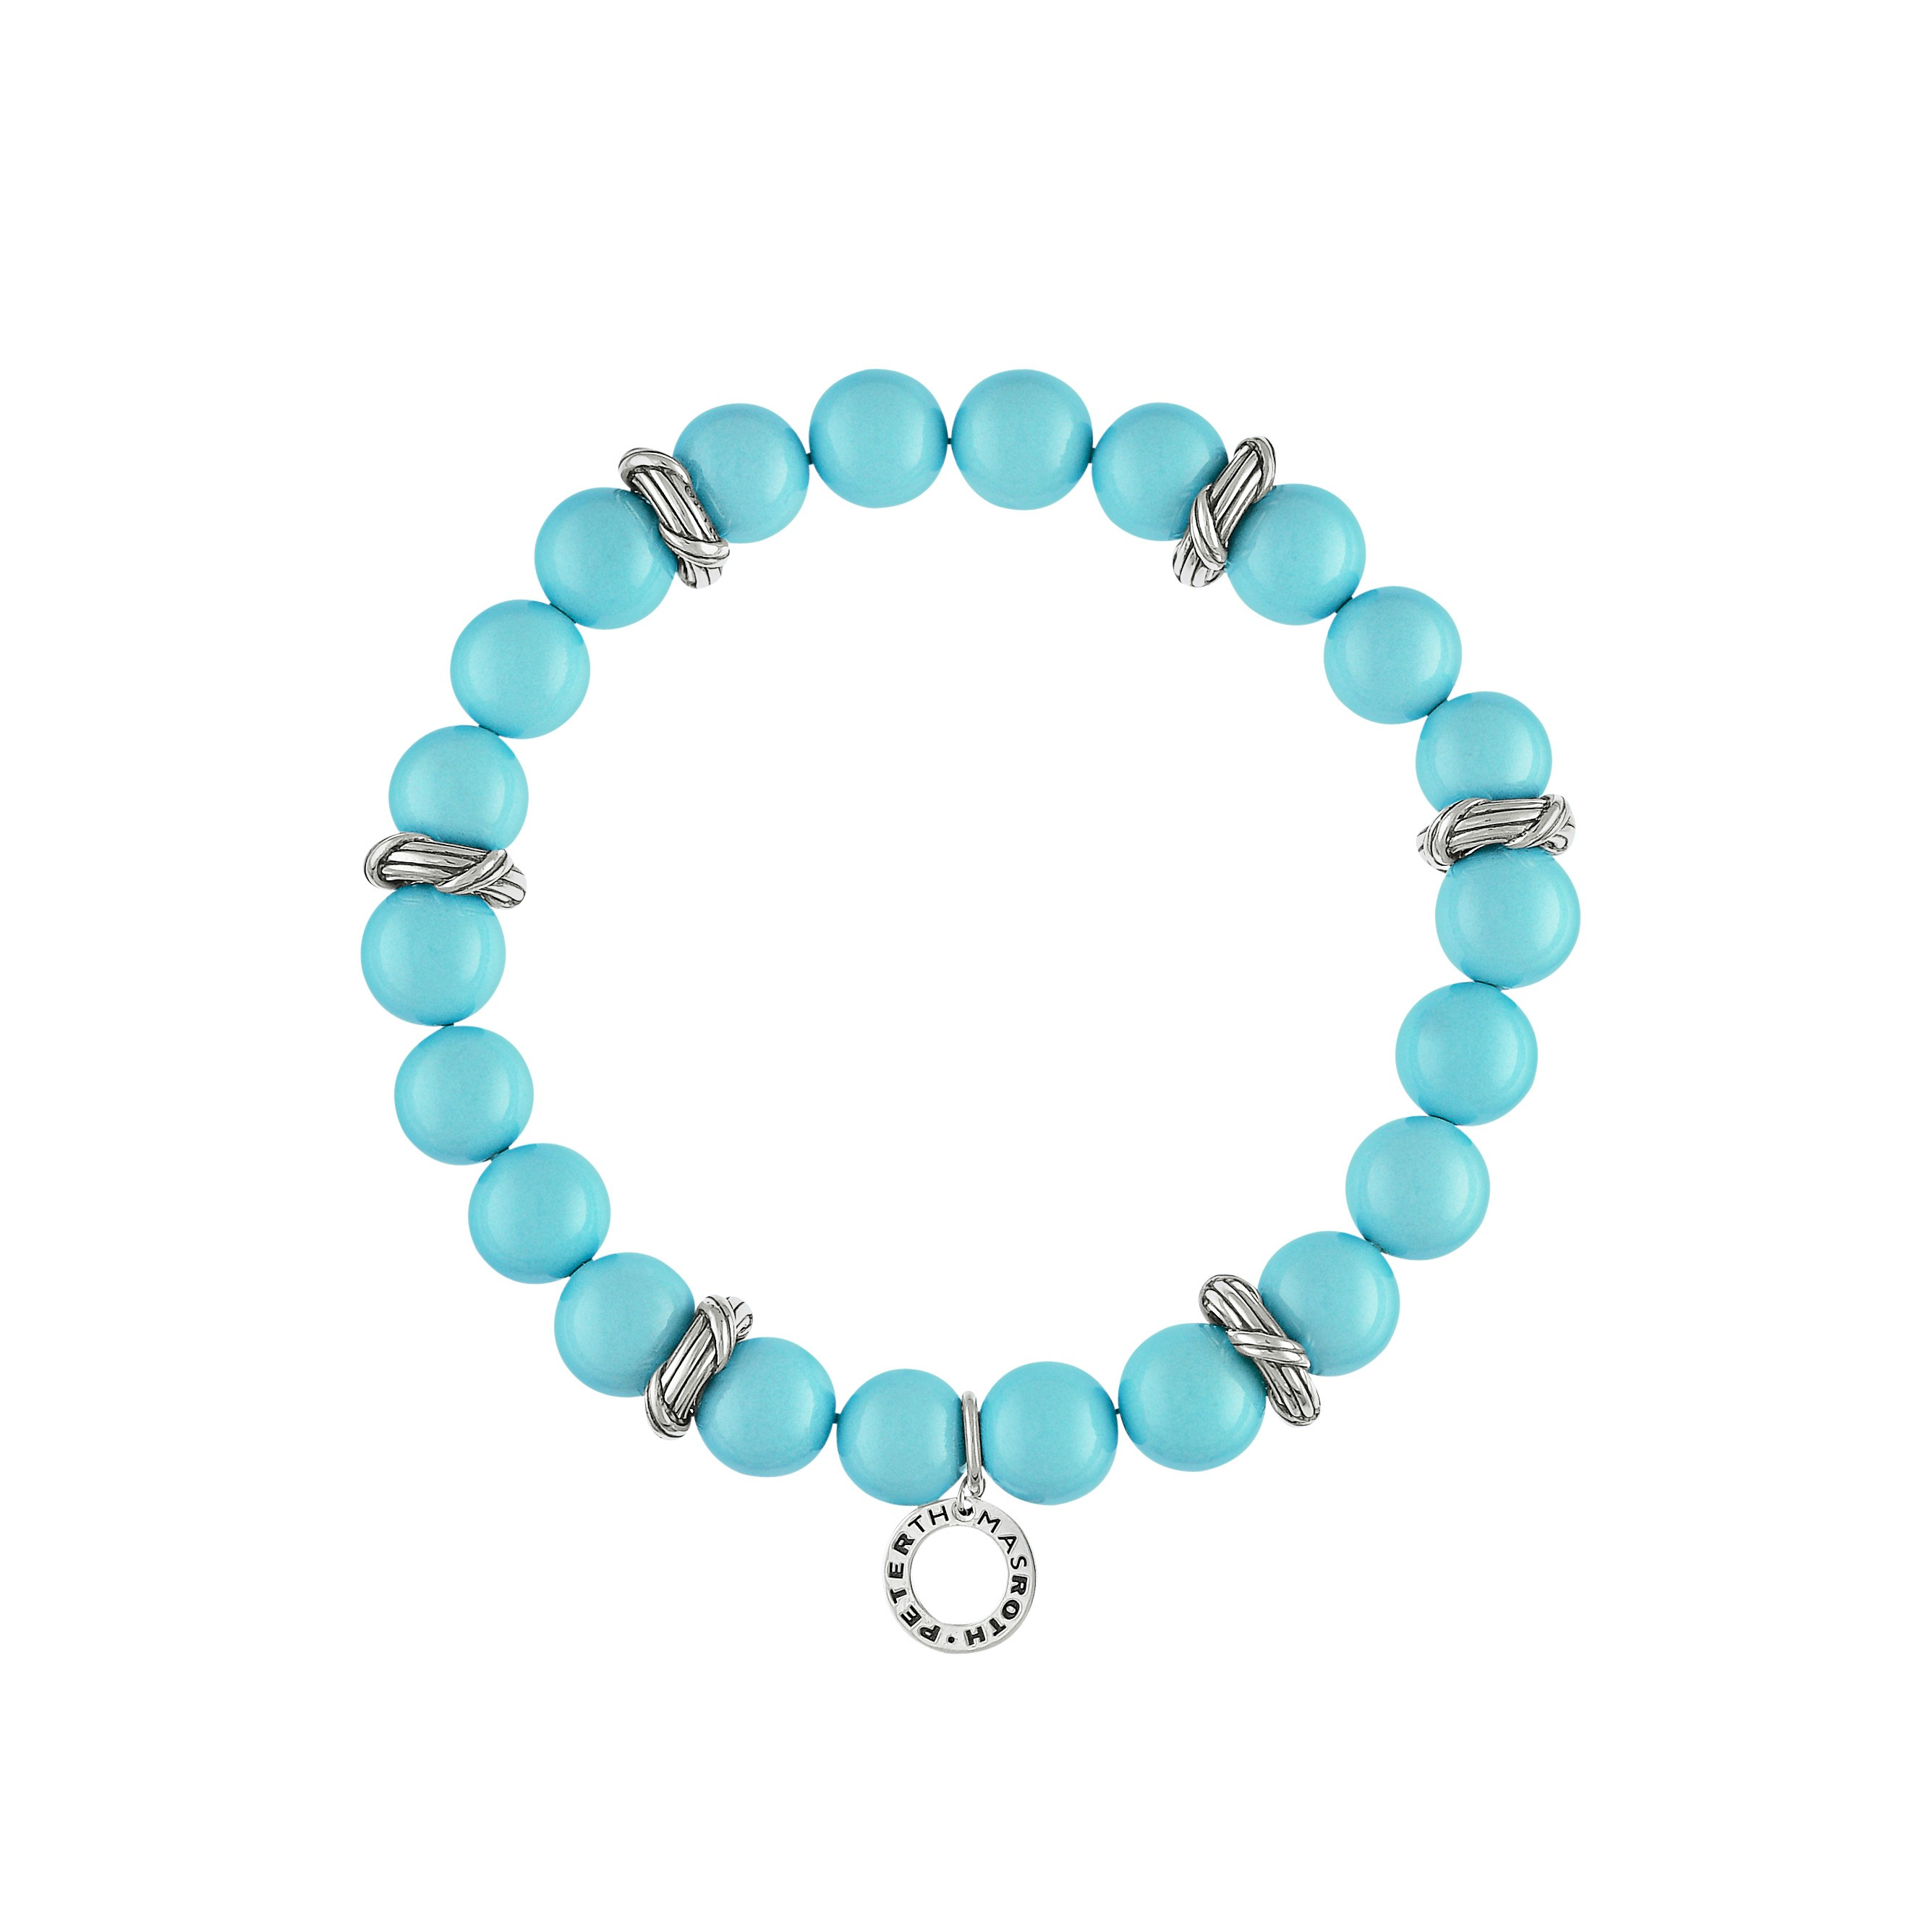 Bead Bracelet in 9mm turquoise sea shell pearls and sterling silver